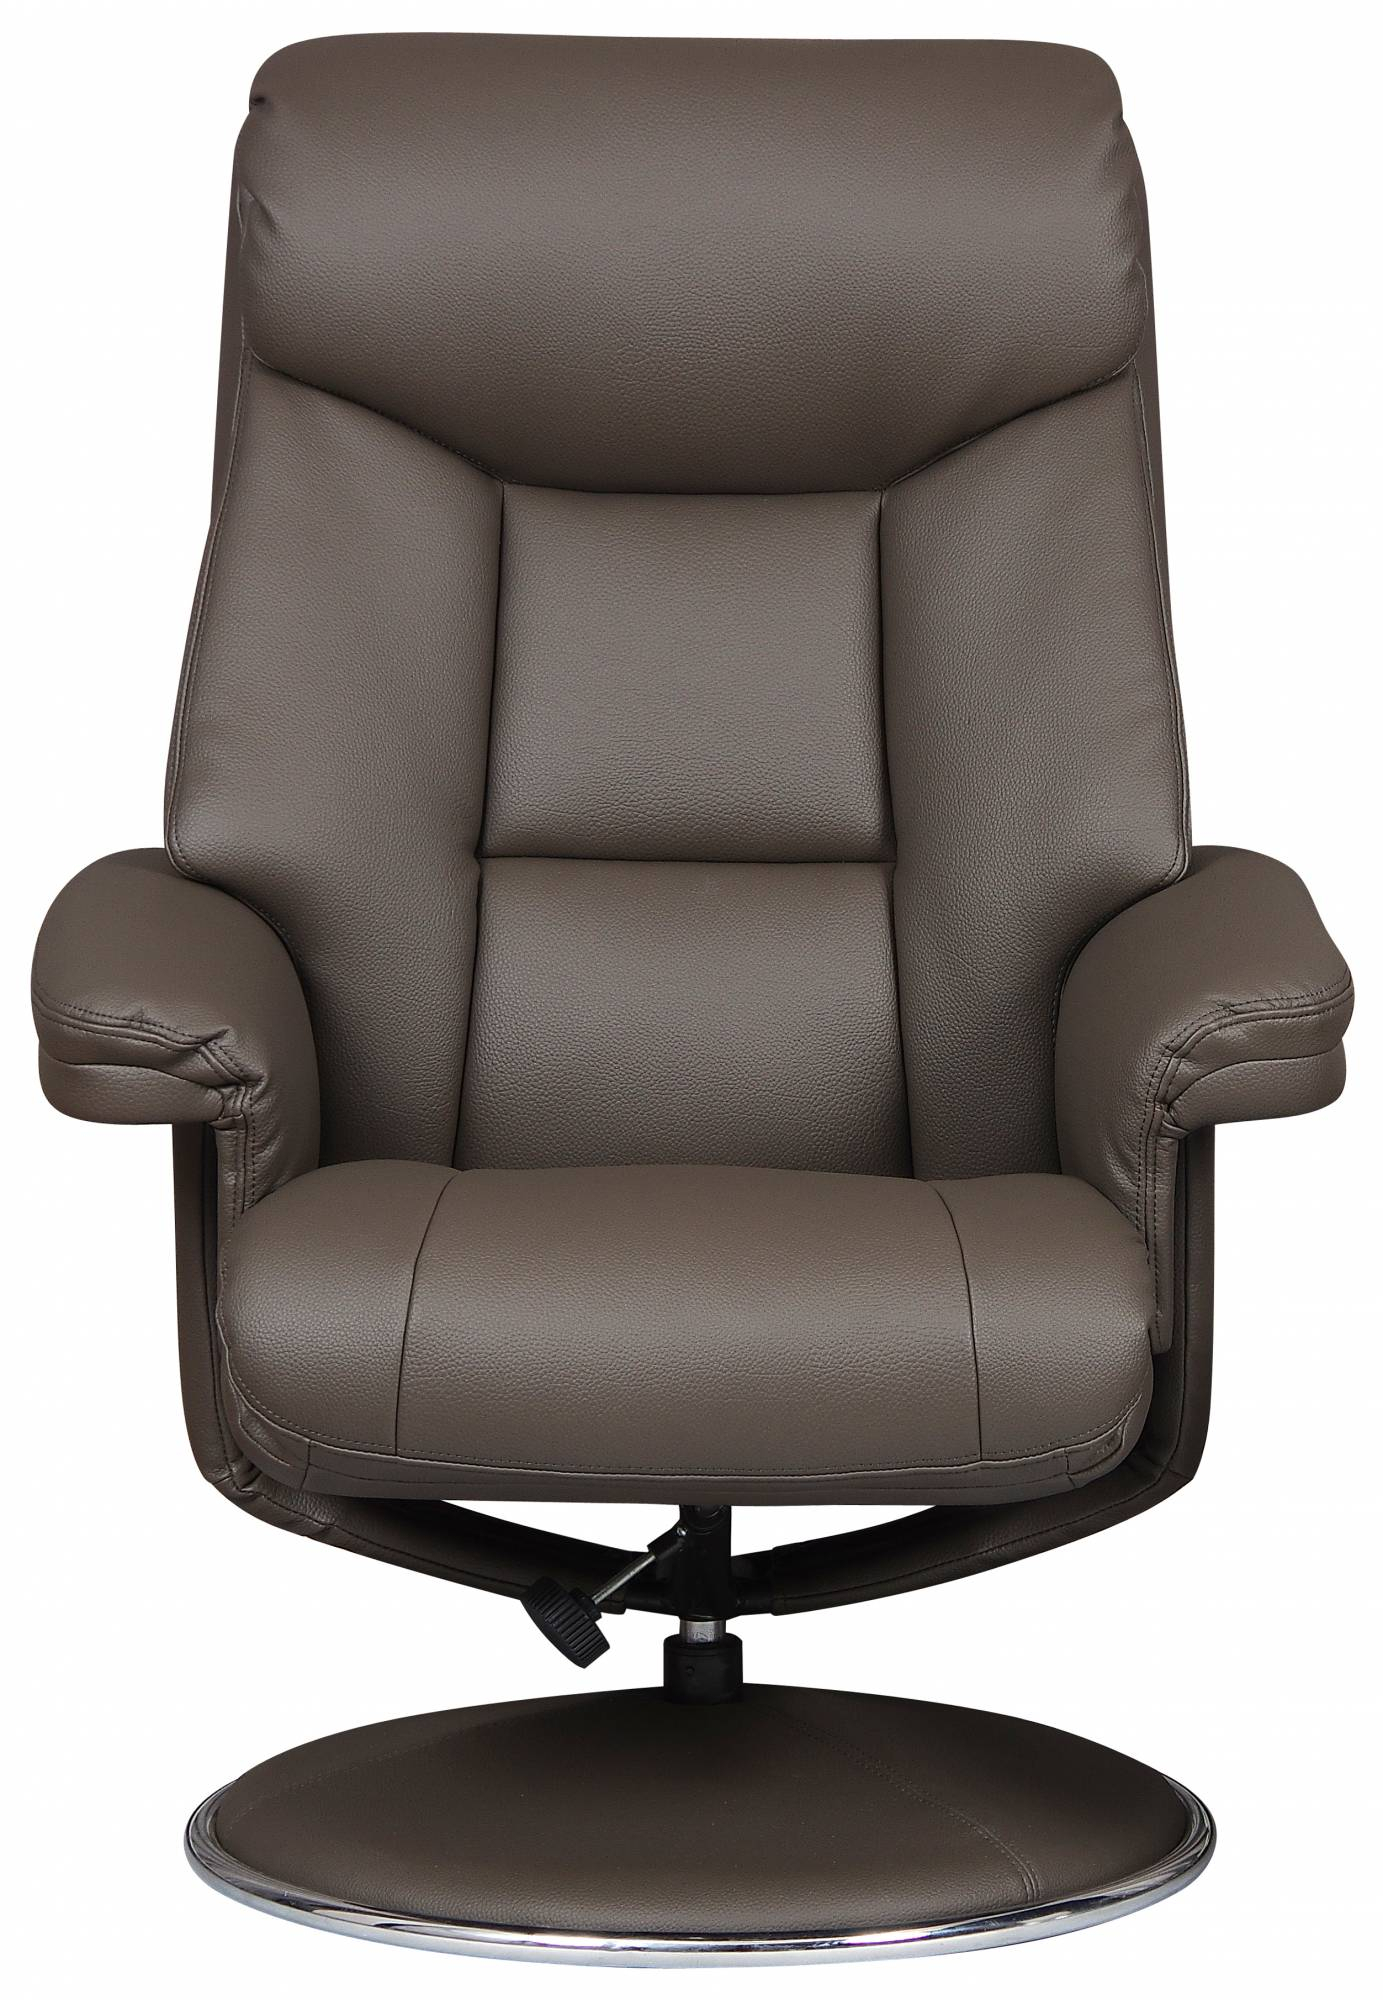 Toulouse – Swivel Recliner Chair & Footstool Charcoal Faux Leather Within Charcoal Swivel Chairs (View 21 of 25)